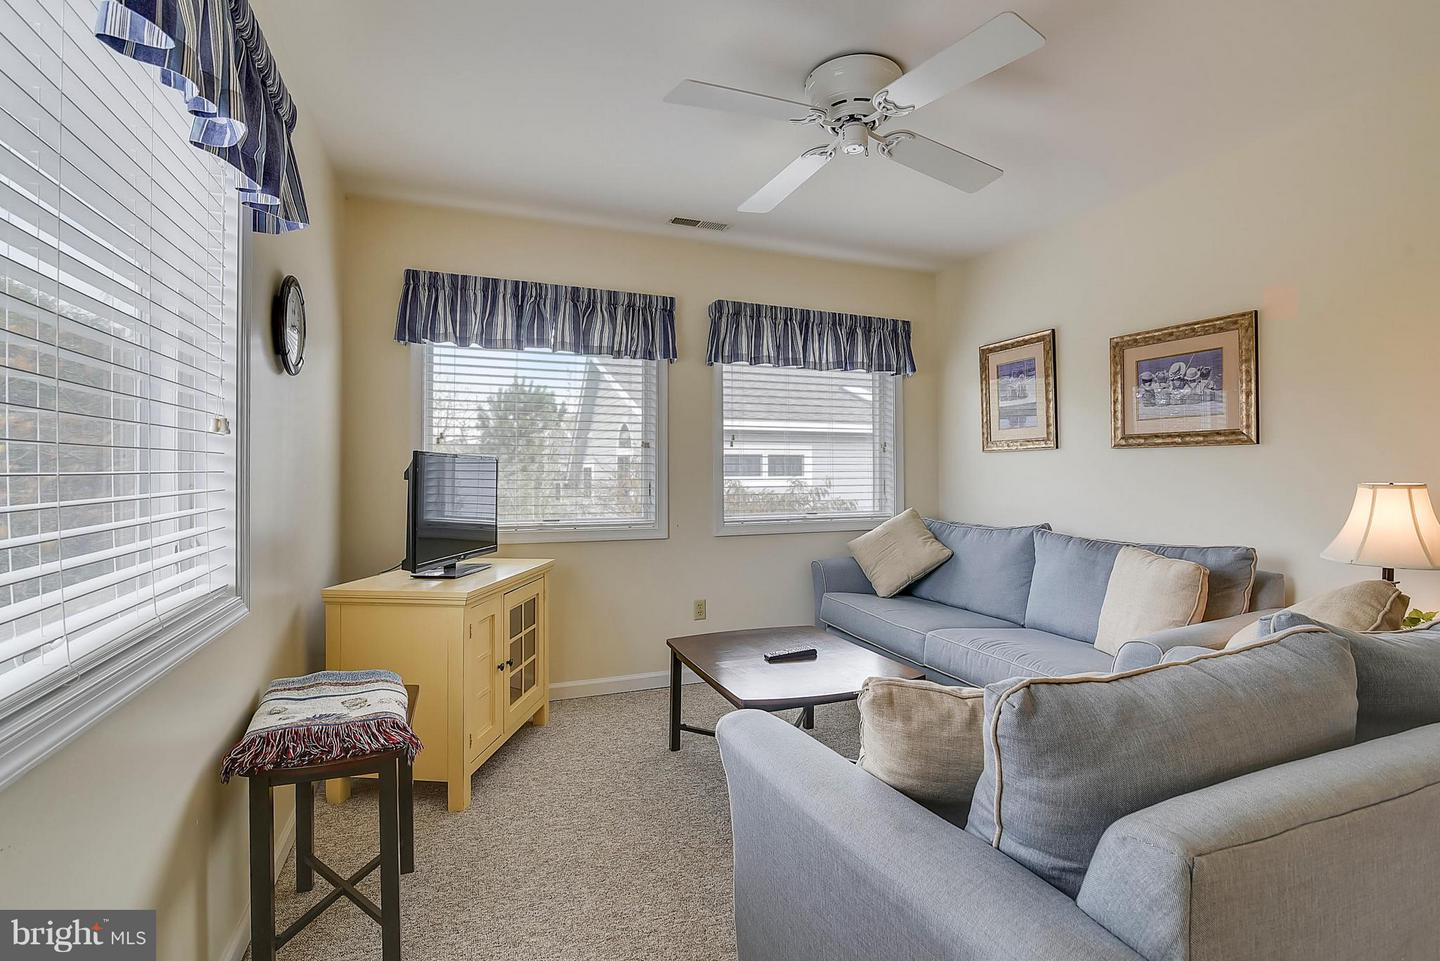 1002344128-300986987080-2018-11-07-14-16-58 39634 Seatrout Cir | North Bethany, DE Real Estate For Sale | MLS# 1002344128  - 1st Choice Properties